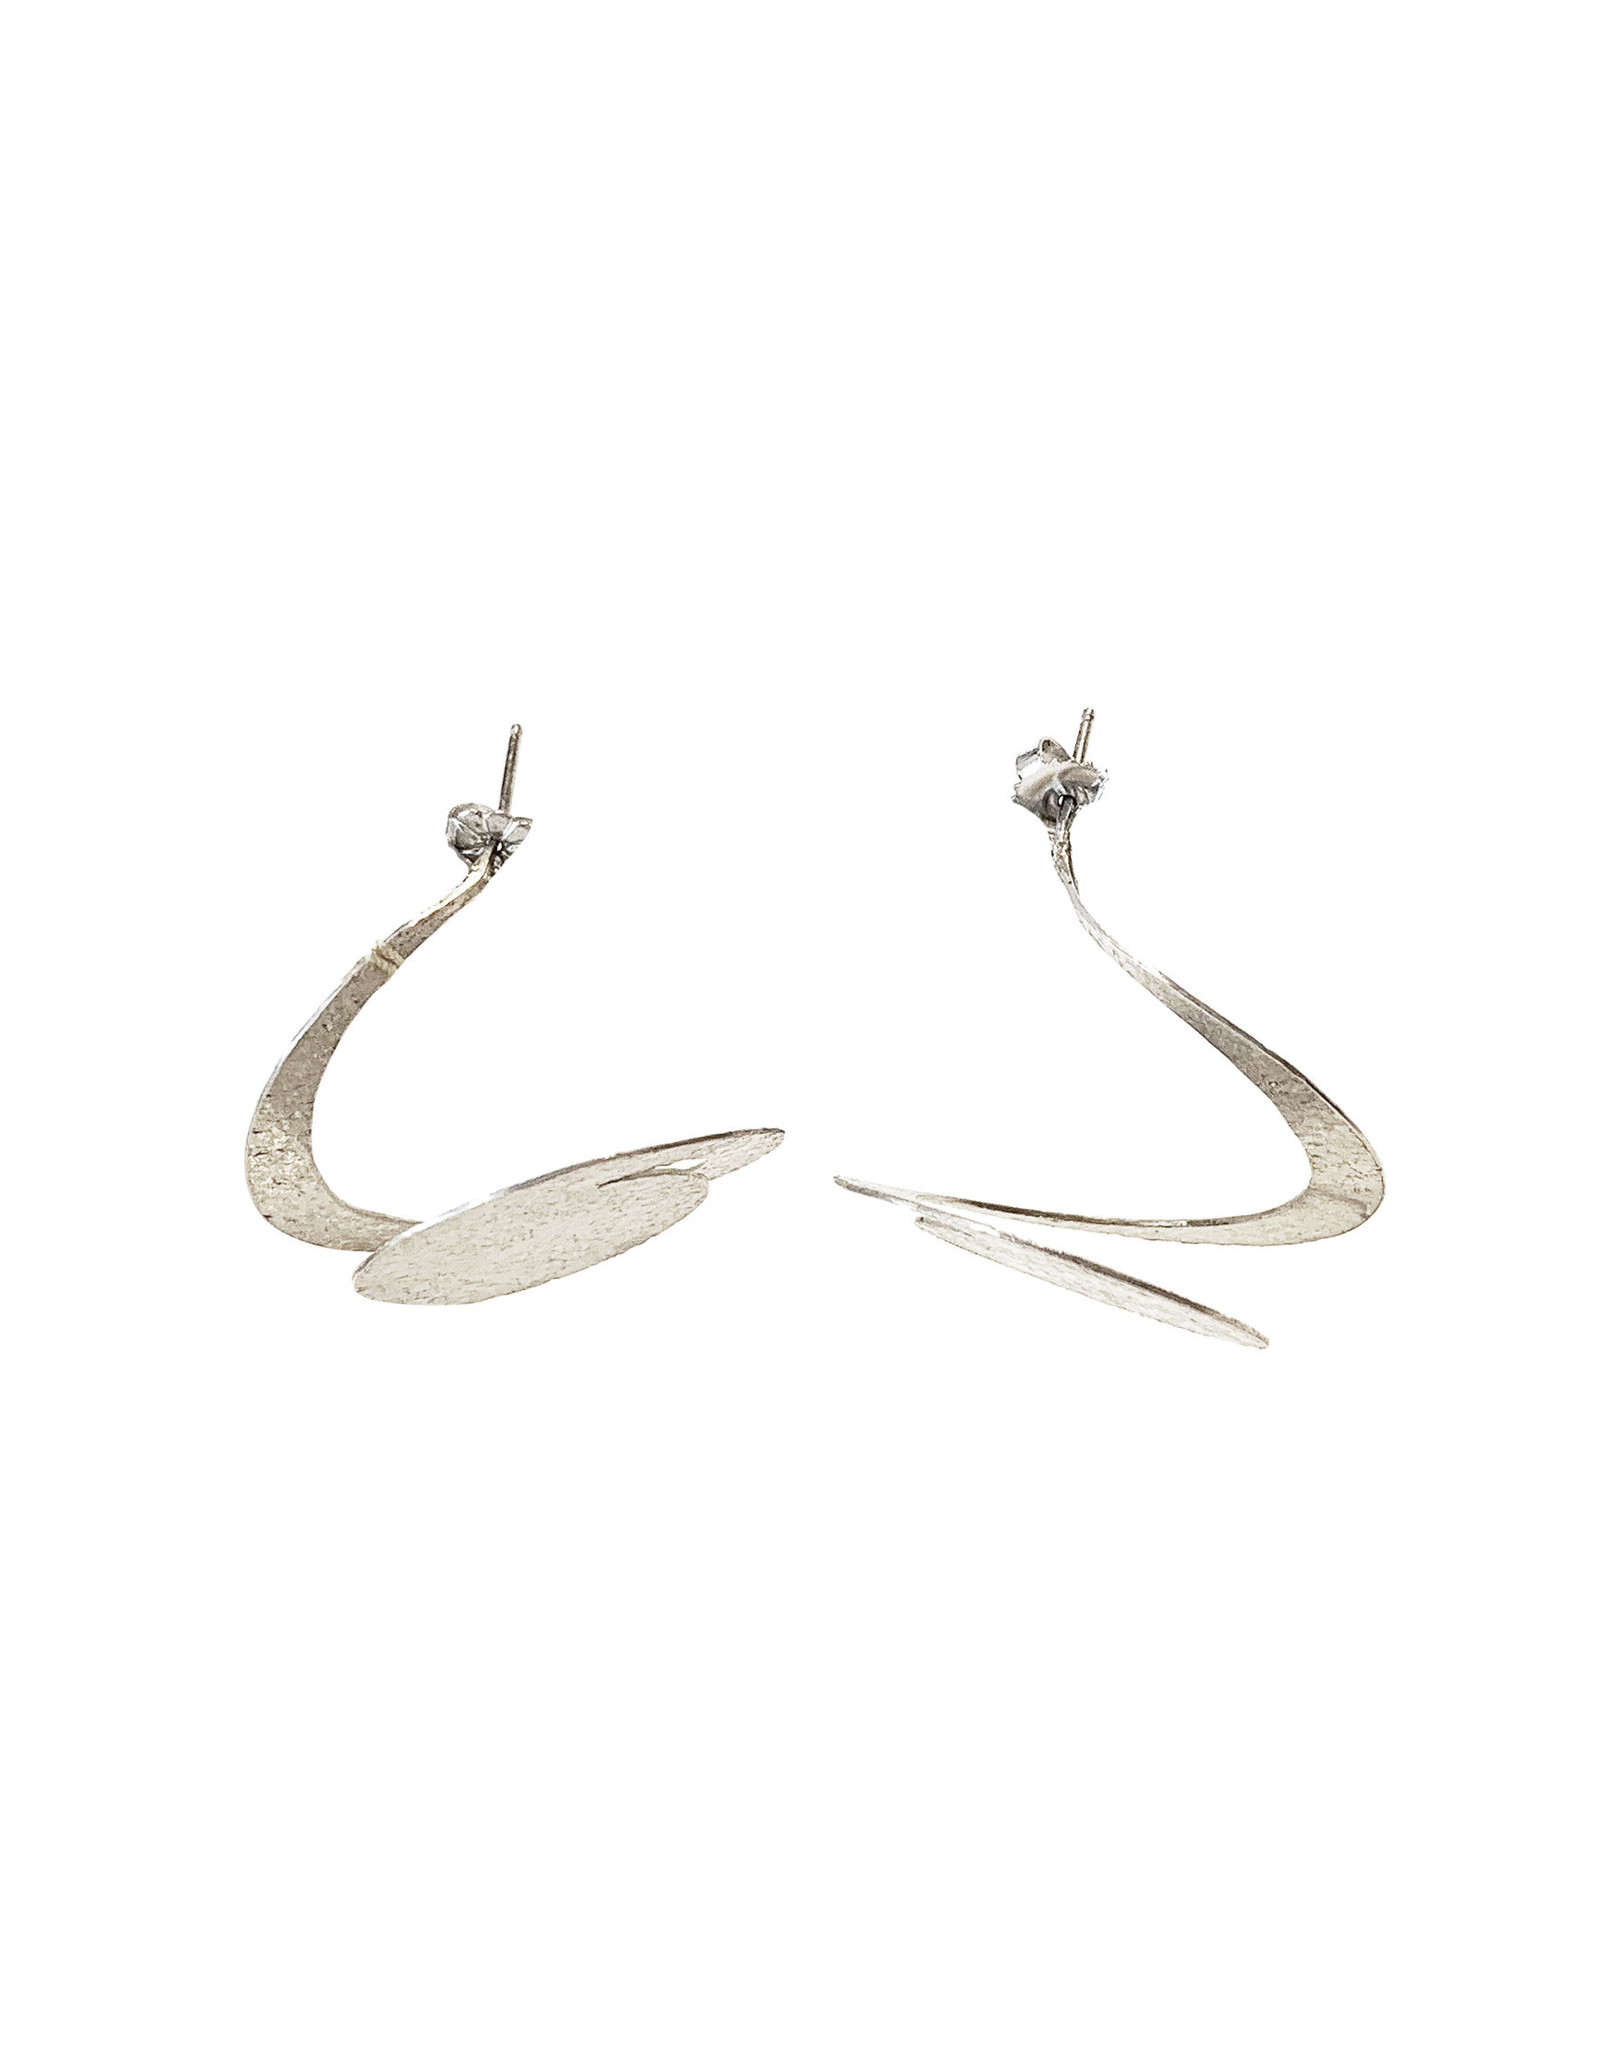 Reiko Reiko Swirl Earrings